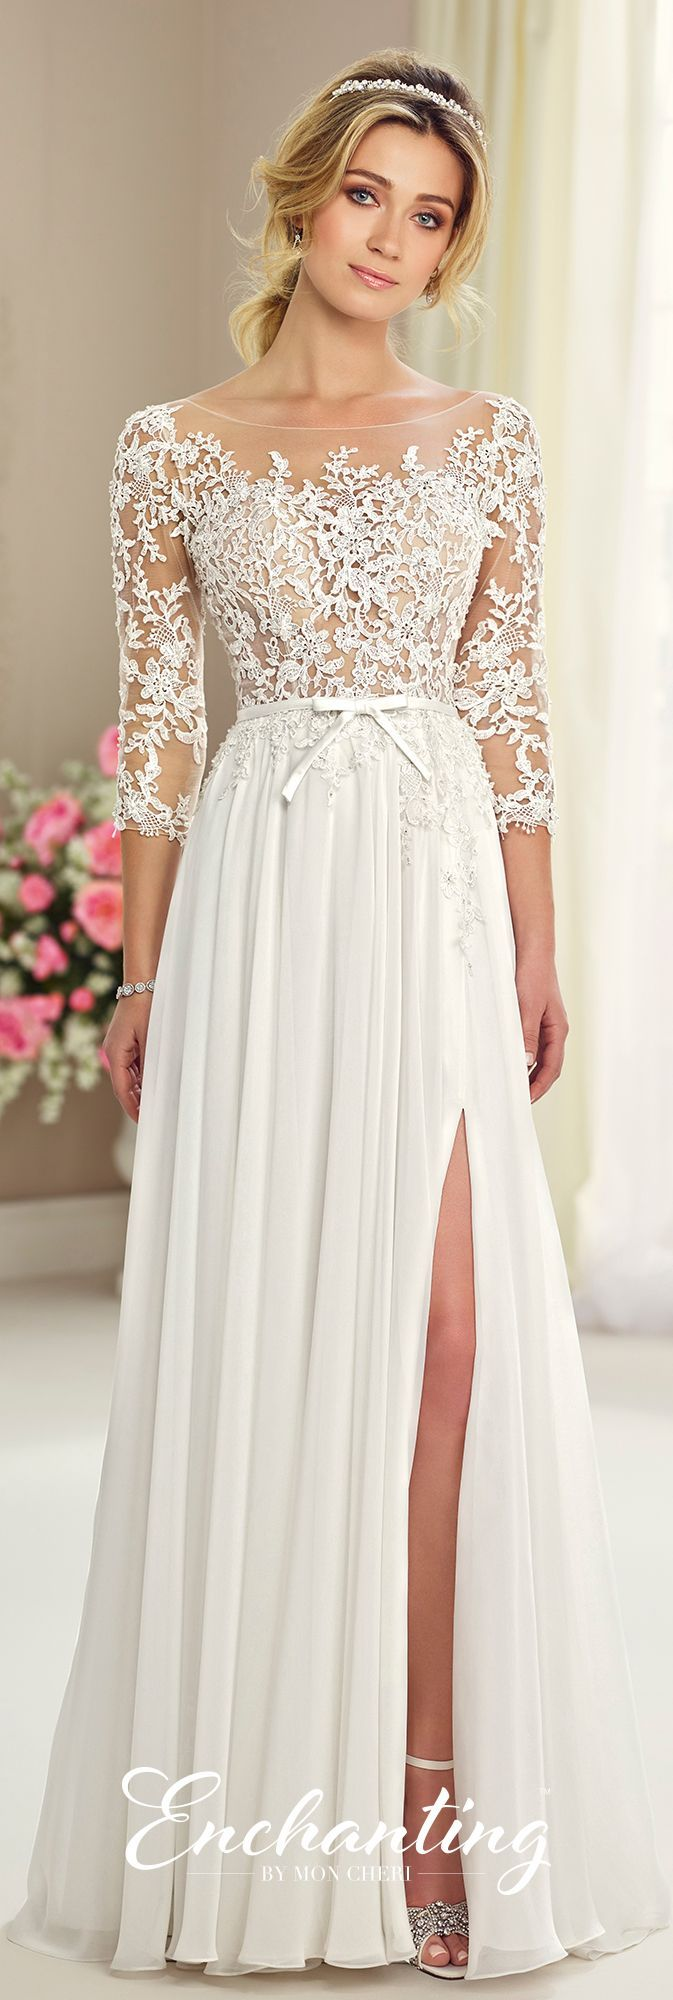 Chiffon Tulle & Lace Wedding Gown - Enchanting by Mon Cheri 217108 7